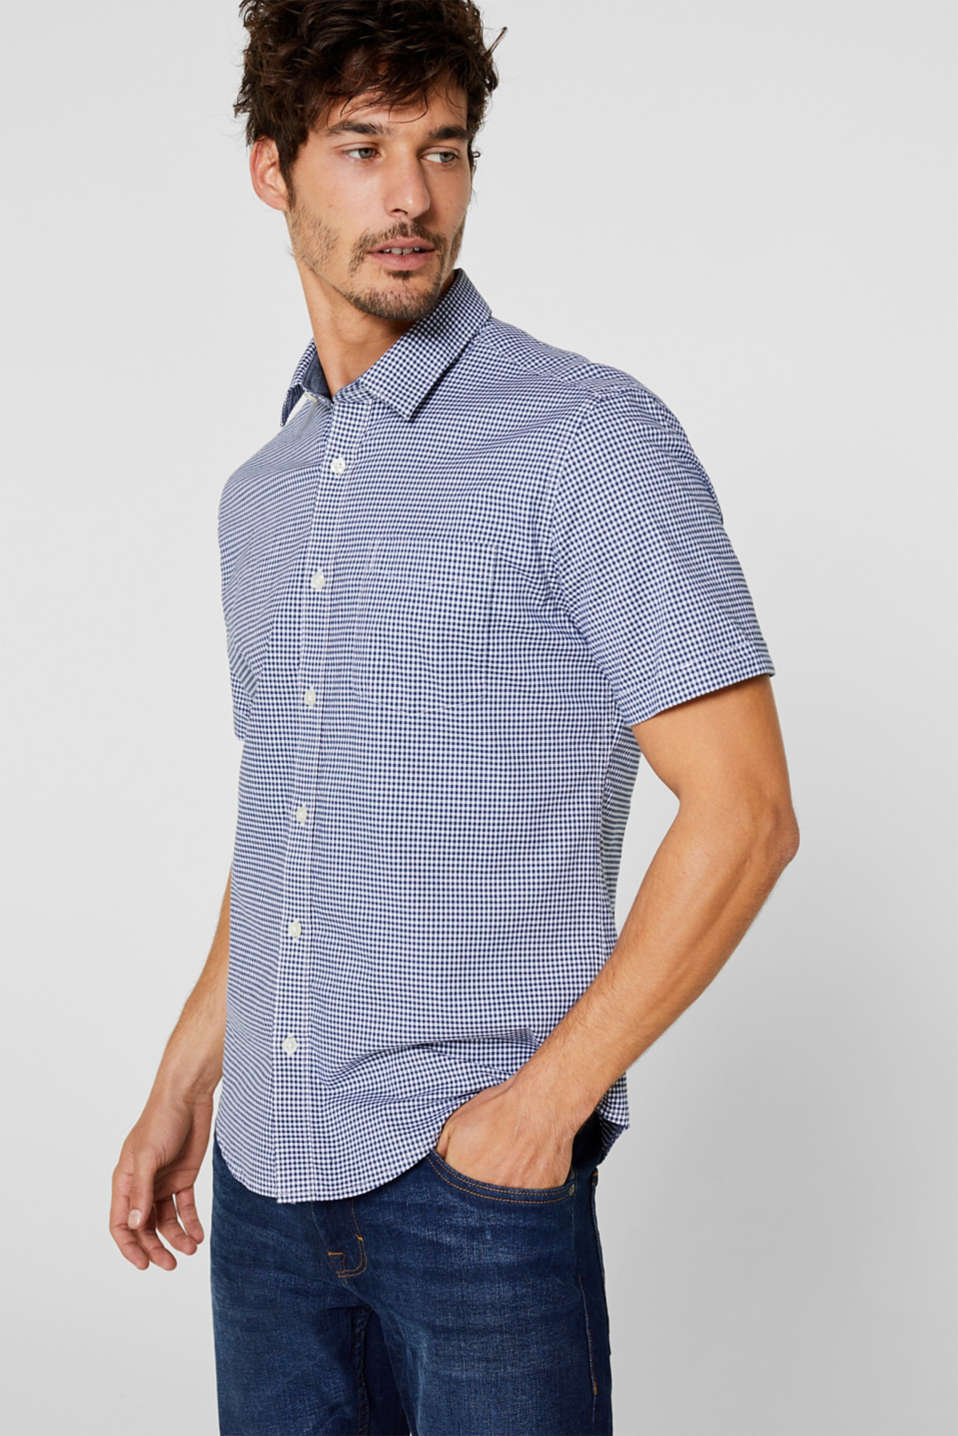 Esprit - Short sleeve shirt with gingham check, stretch cotton